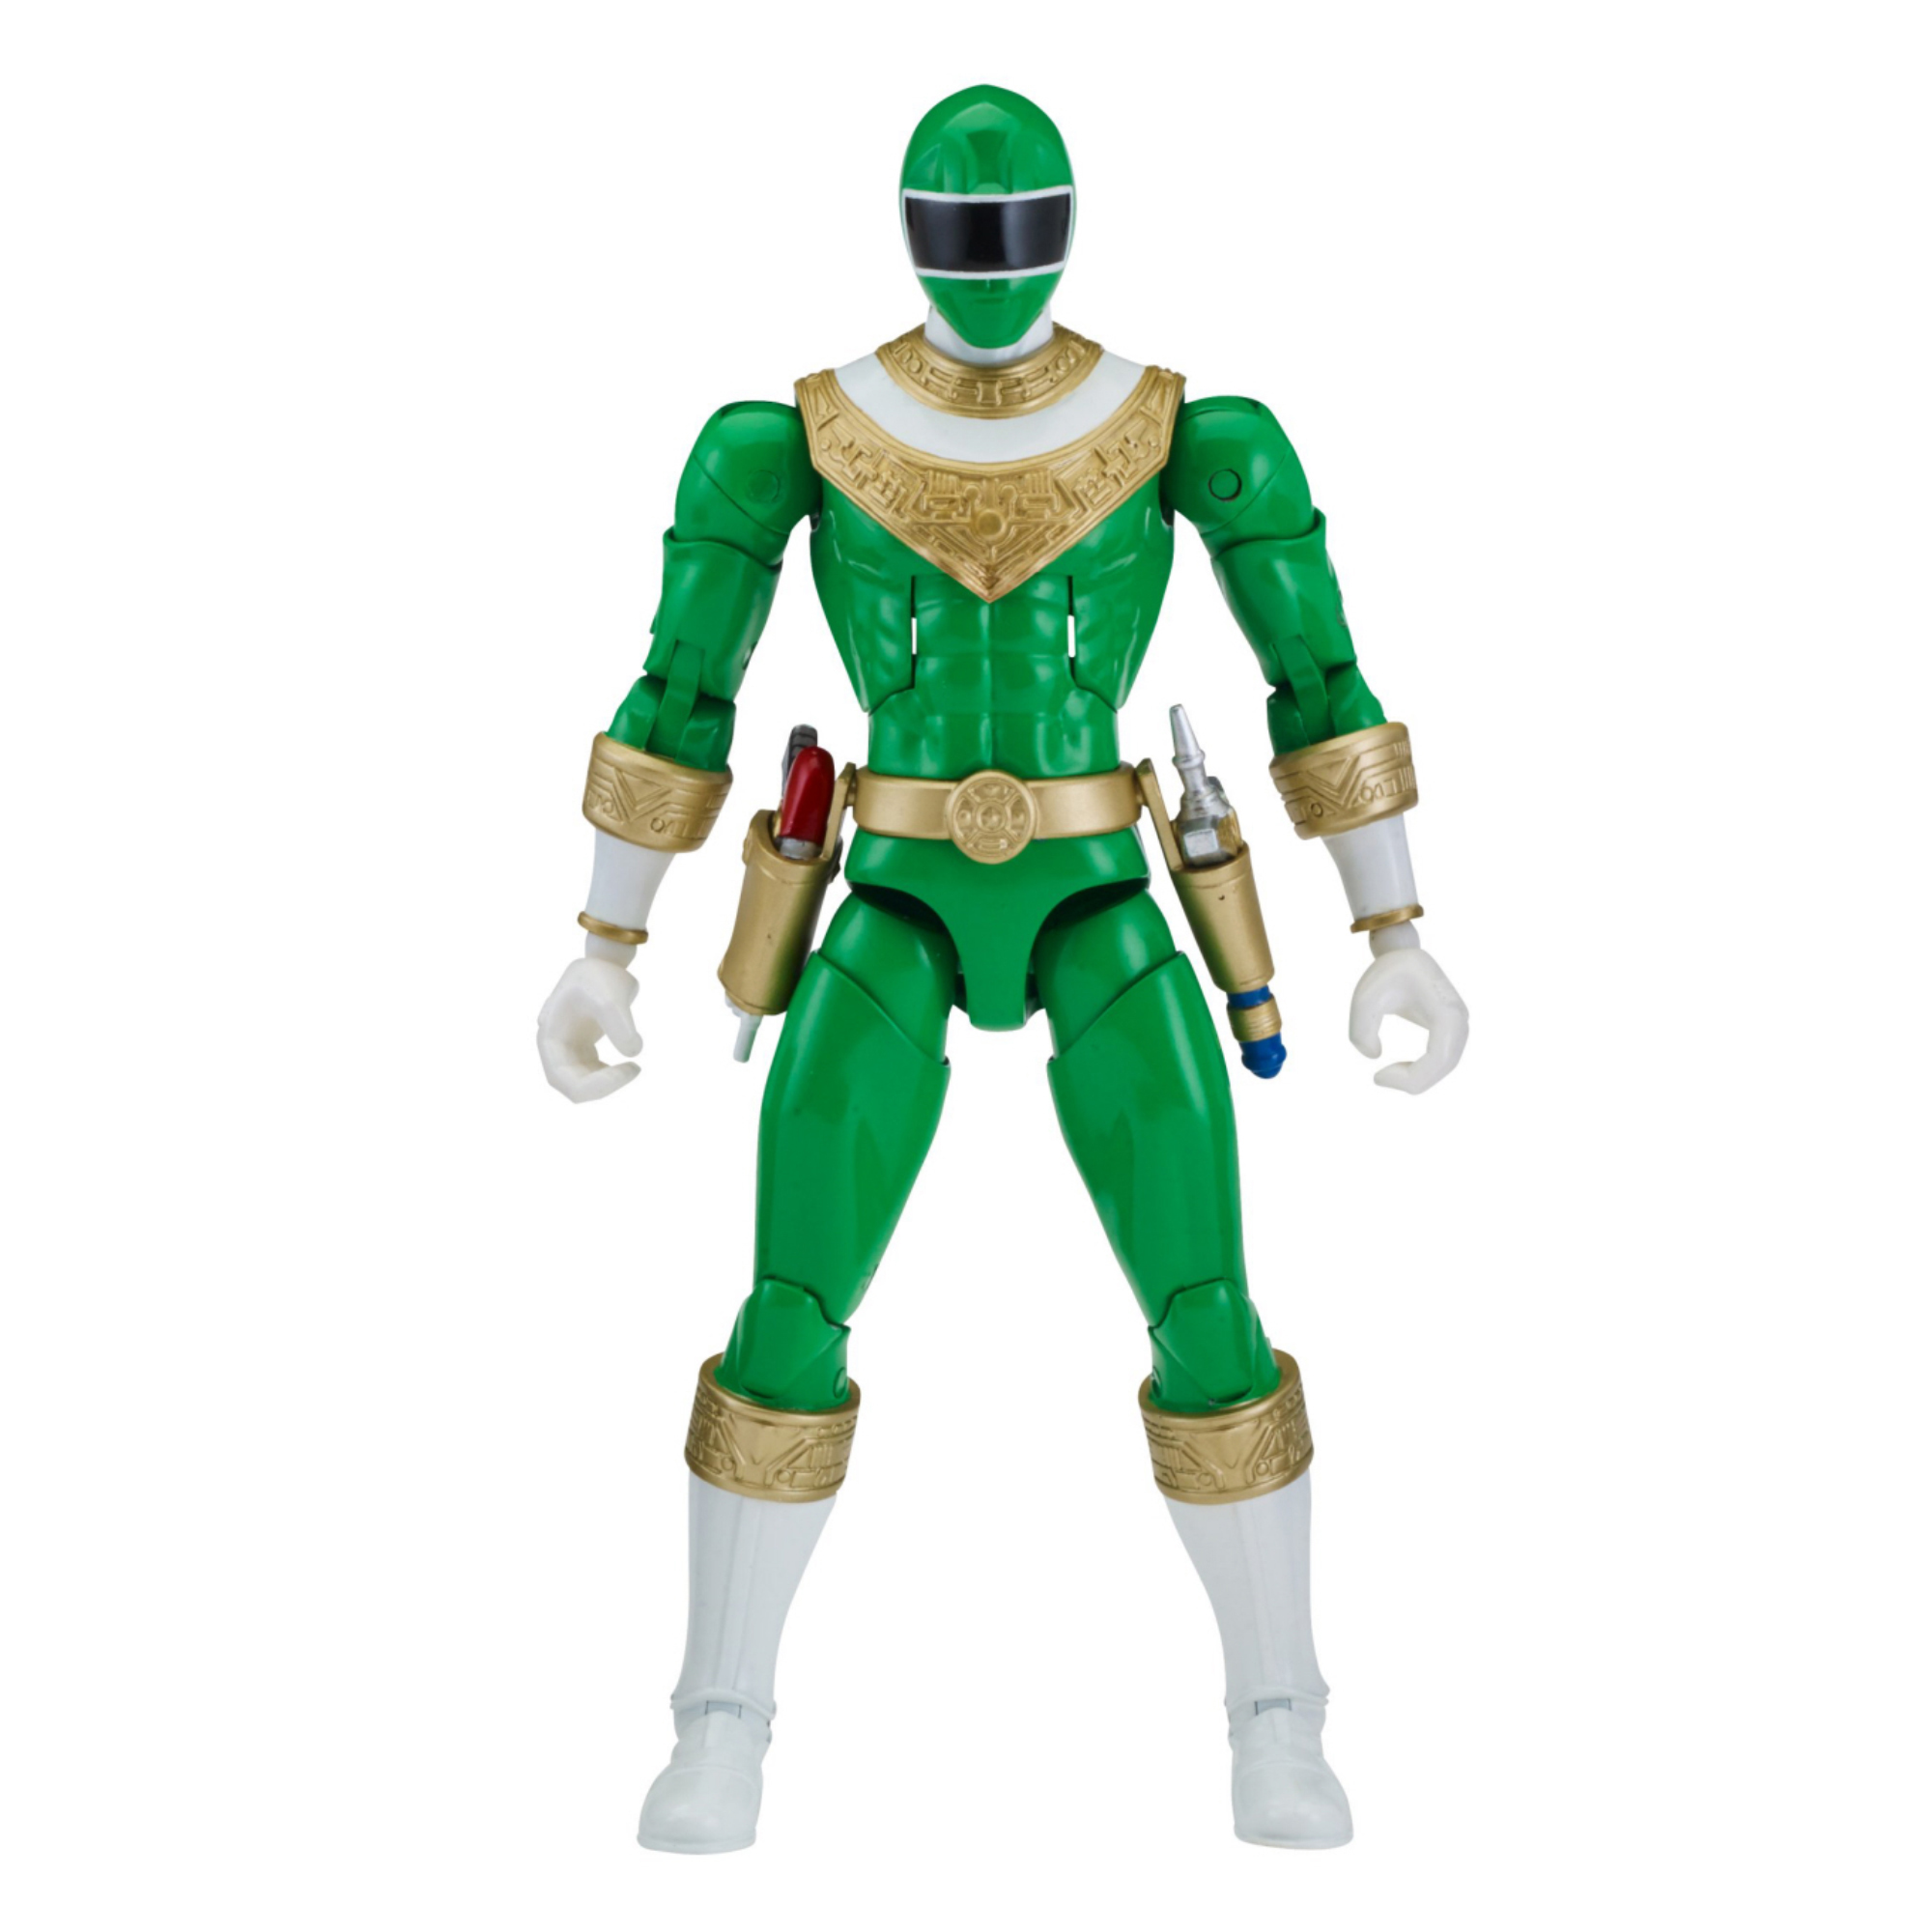 "Power Rangers Legacy 6.5"" Action Figure Zeo Green"